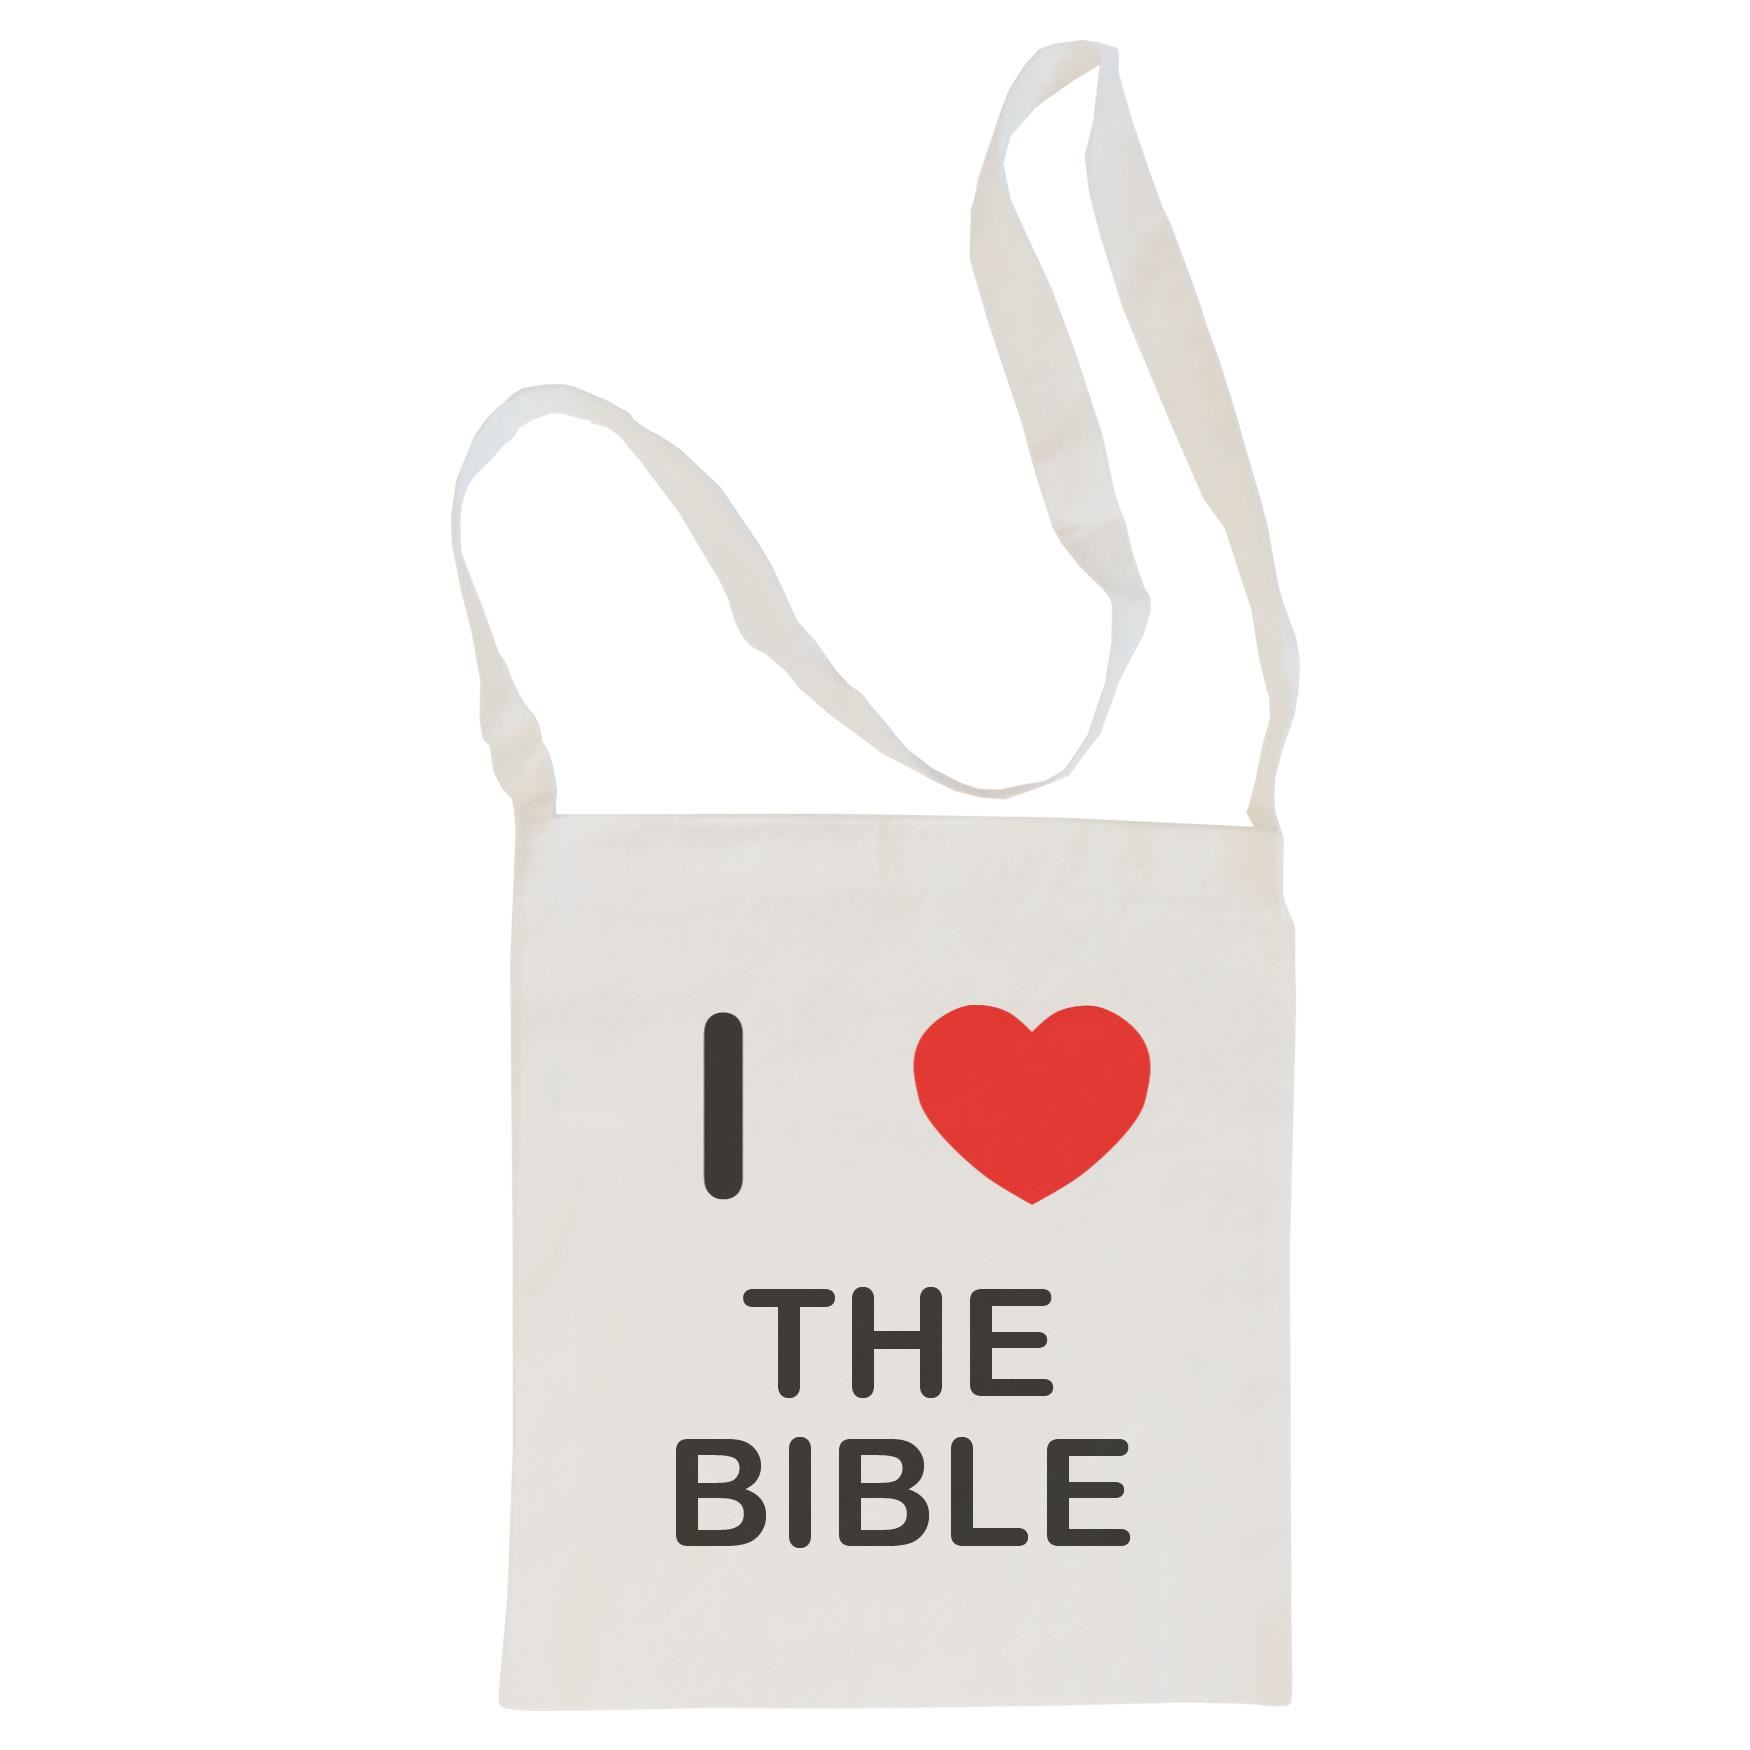 I Love The Bible - Cotton Bag | Size choice Tote, Shopper or Sling